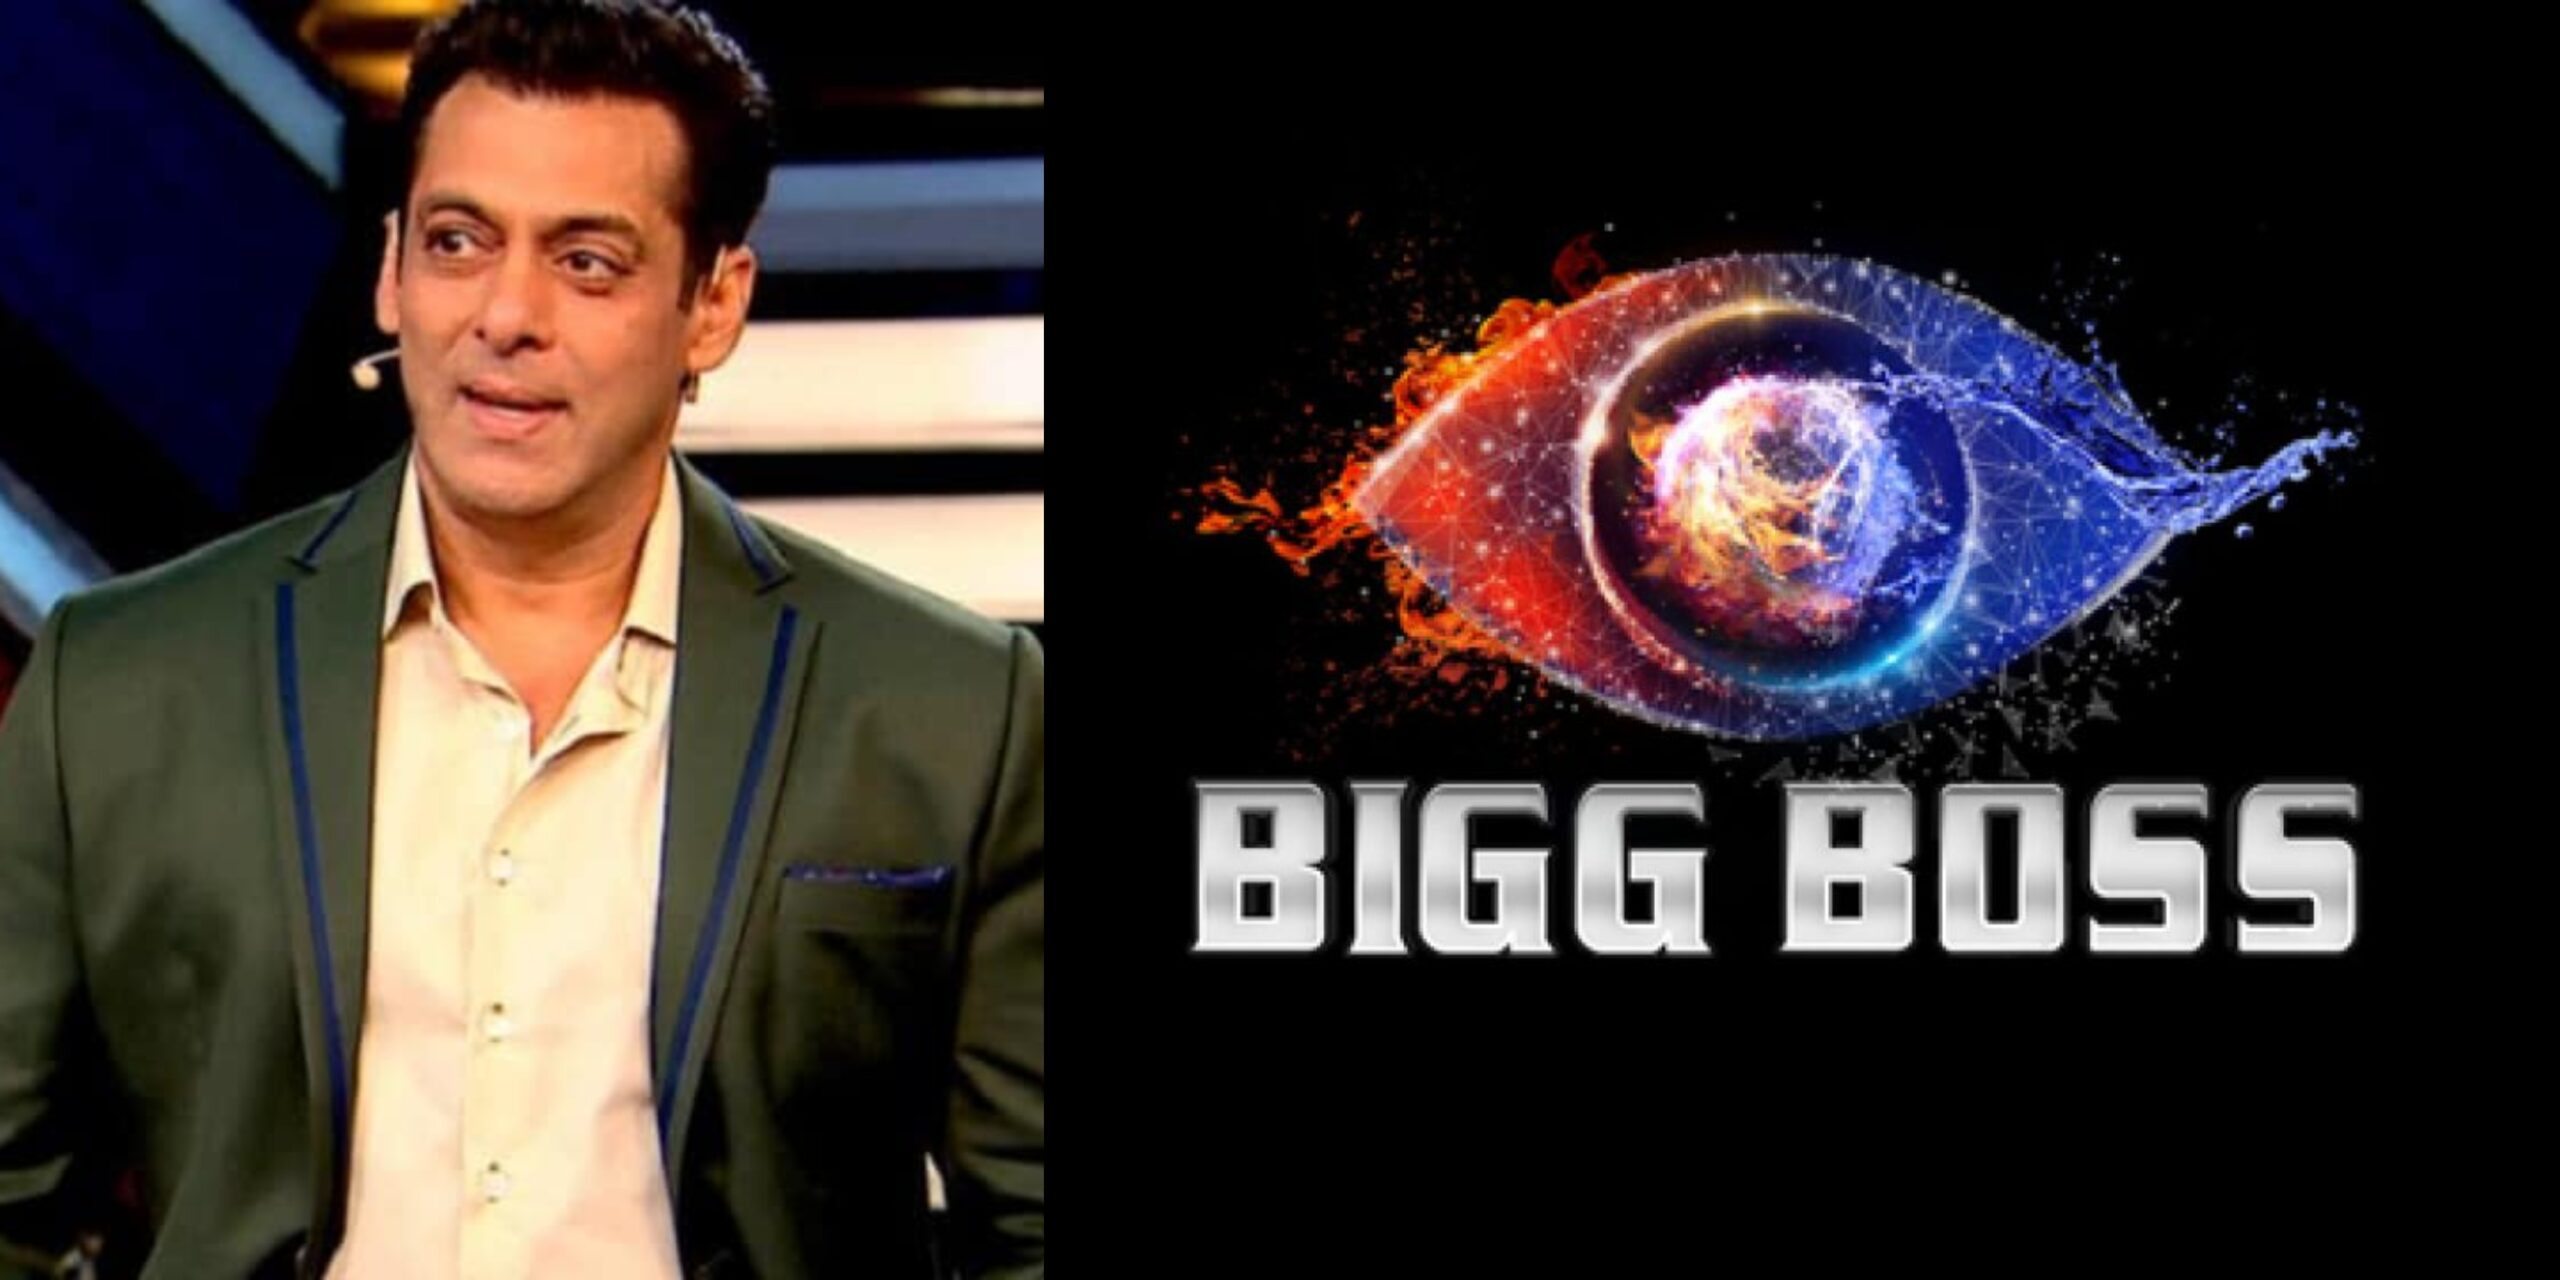 Mark 7 October Bigg Boss 14 premiering on Colors and Voot